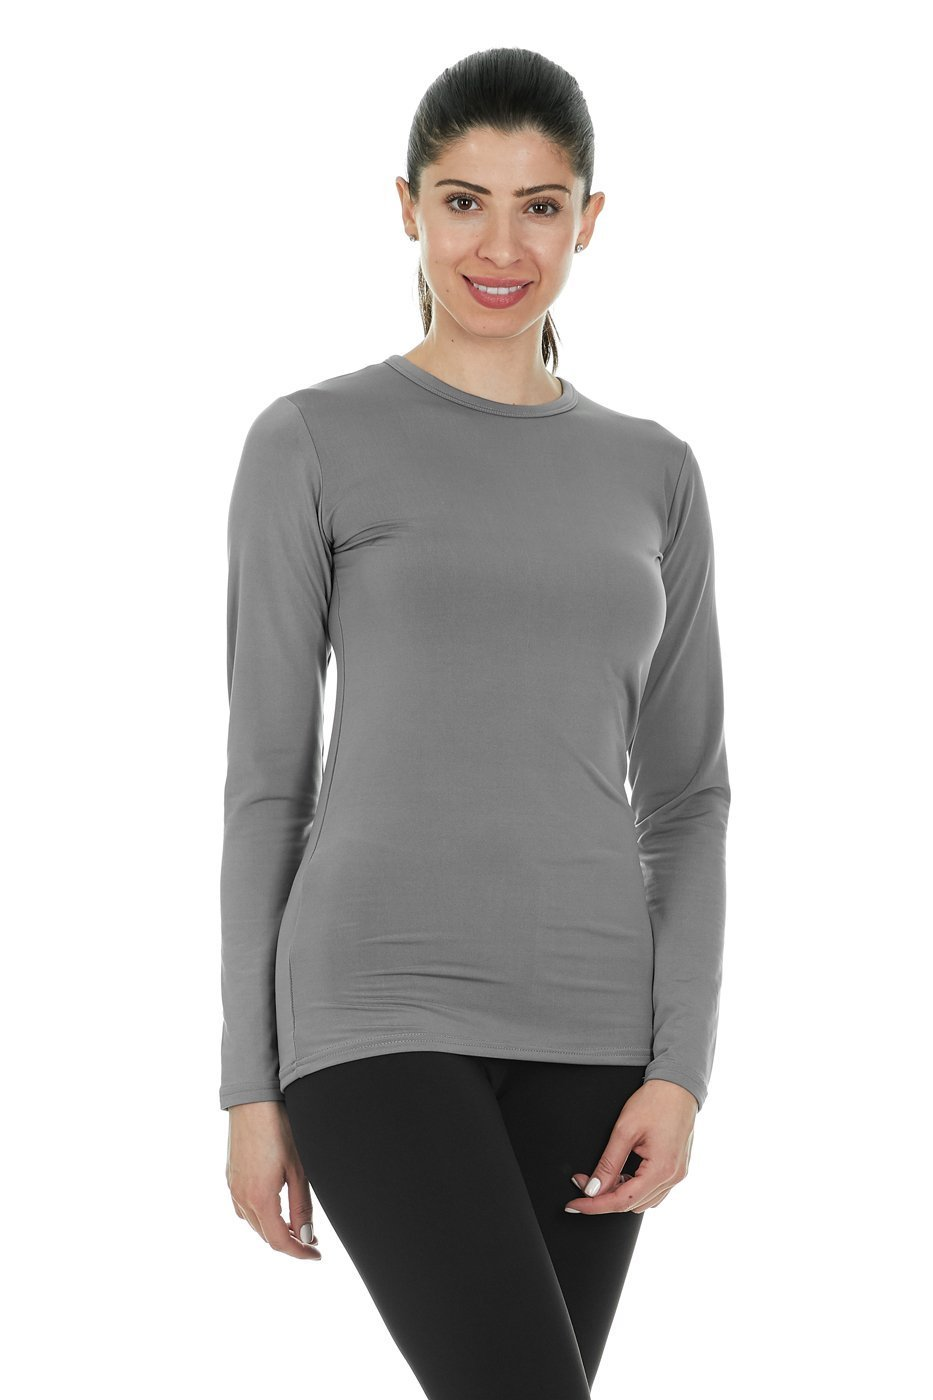 Thermajane Women's Ultra Soft Thermal Shirt - Compression Baselayer Crew Neck Top - Fleece Lined Long Sleeve Underwear T Shirt (Grey, Large) by Thermajane